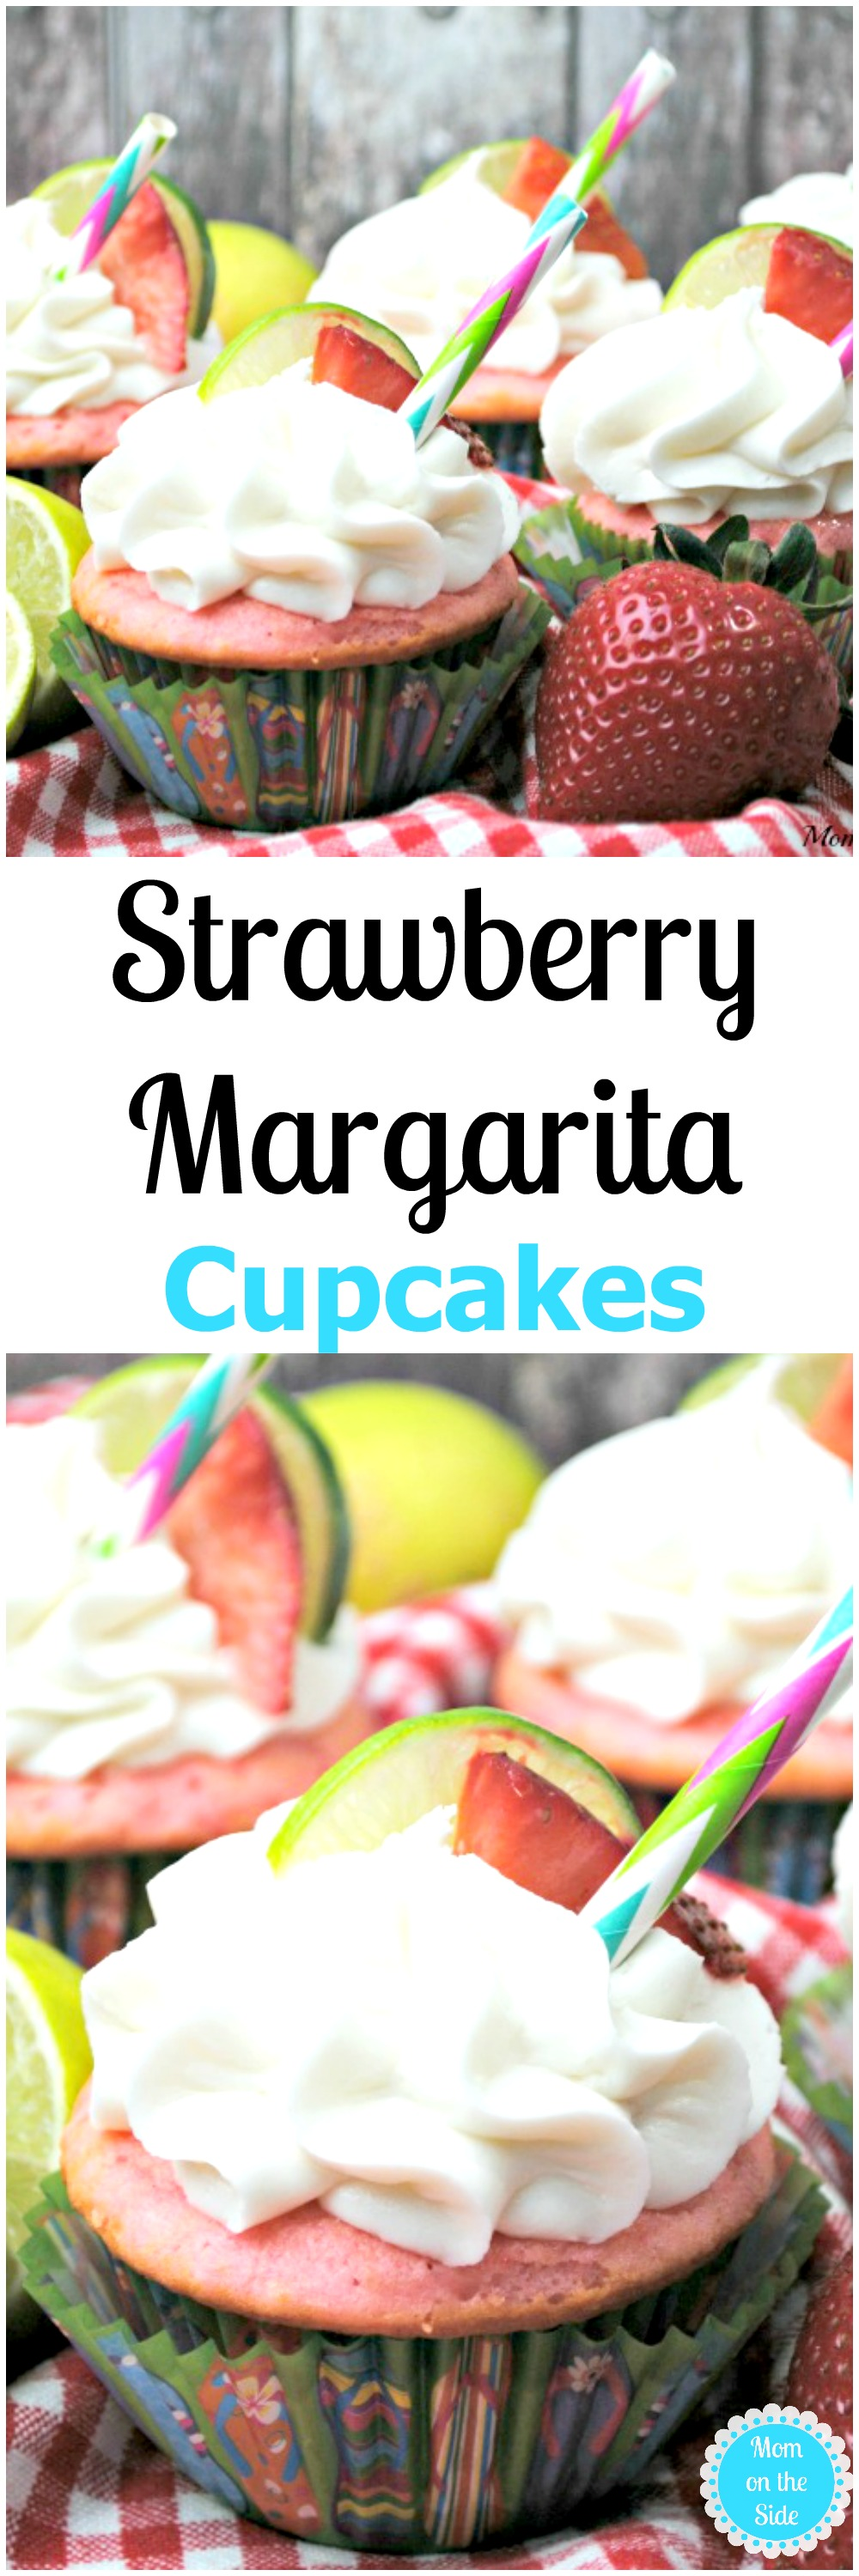 If you're over 21 and looking for a dessert infused with alcohol, give these Strawberry Margarita Cupcakes a whirl! Check out the recipe on Mom on the Side!